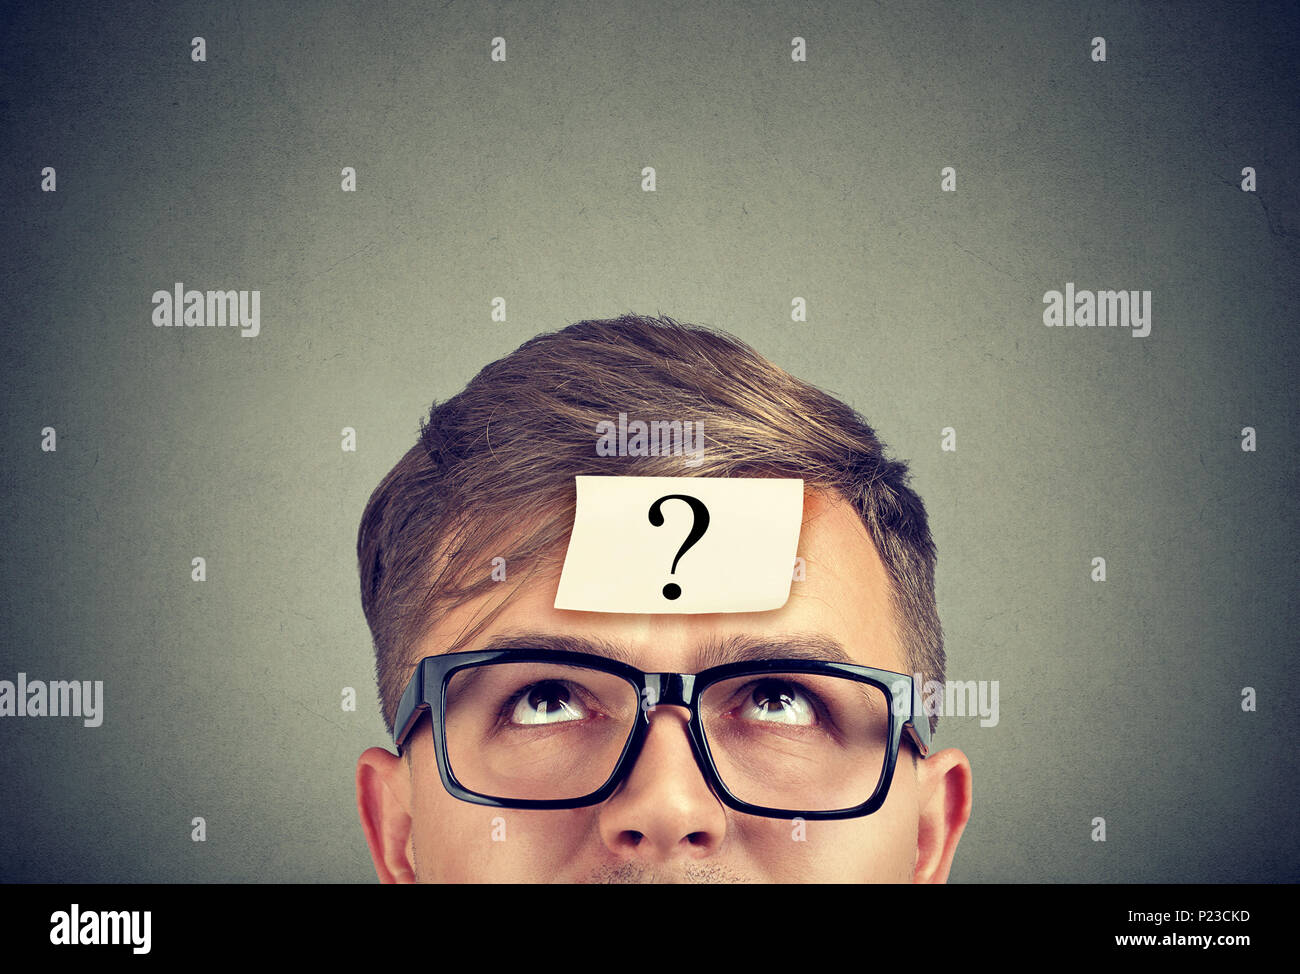 Young man wearing black glasses with question mark on forehead looking up. - Stock Image